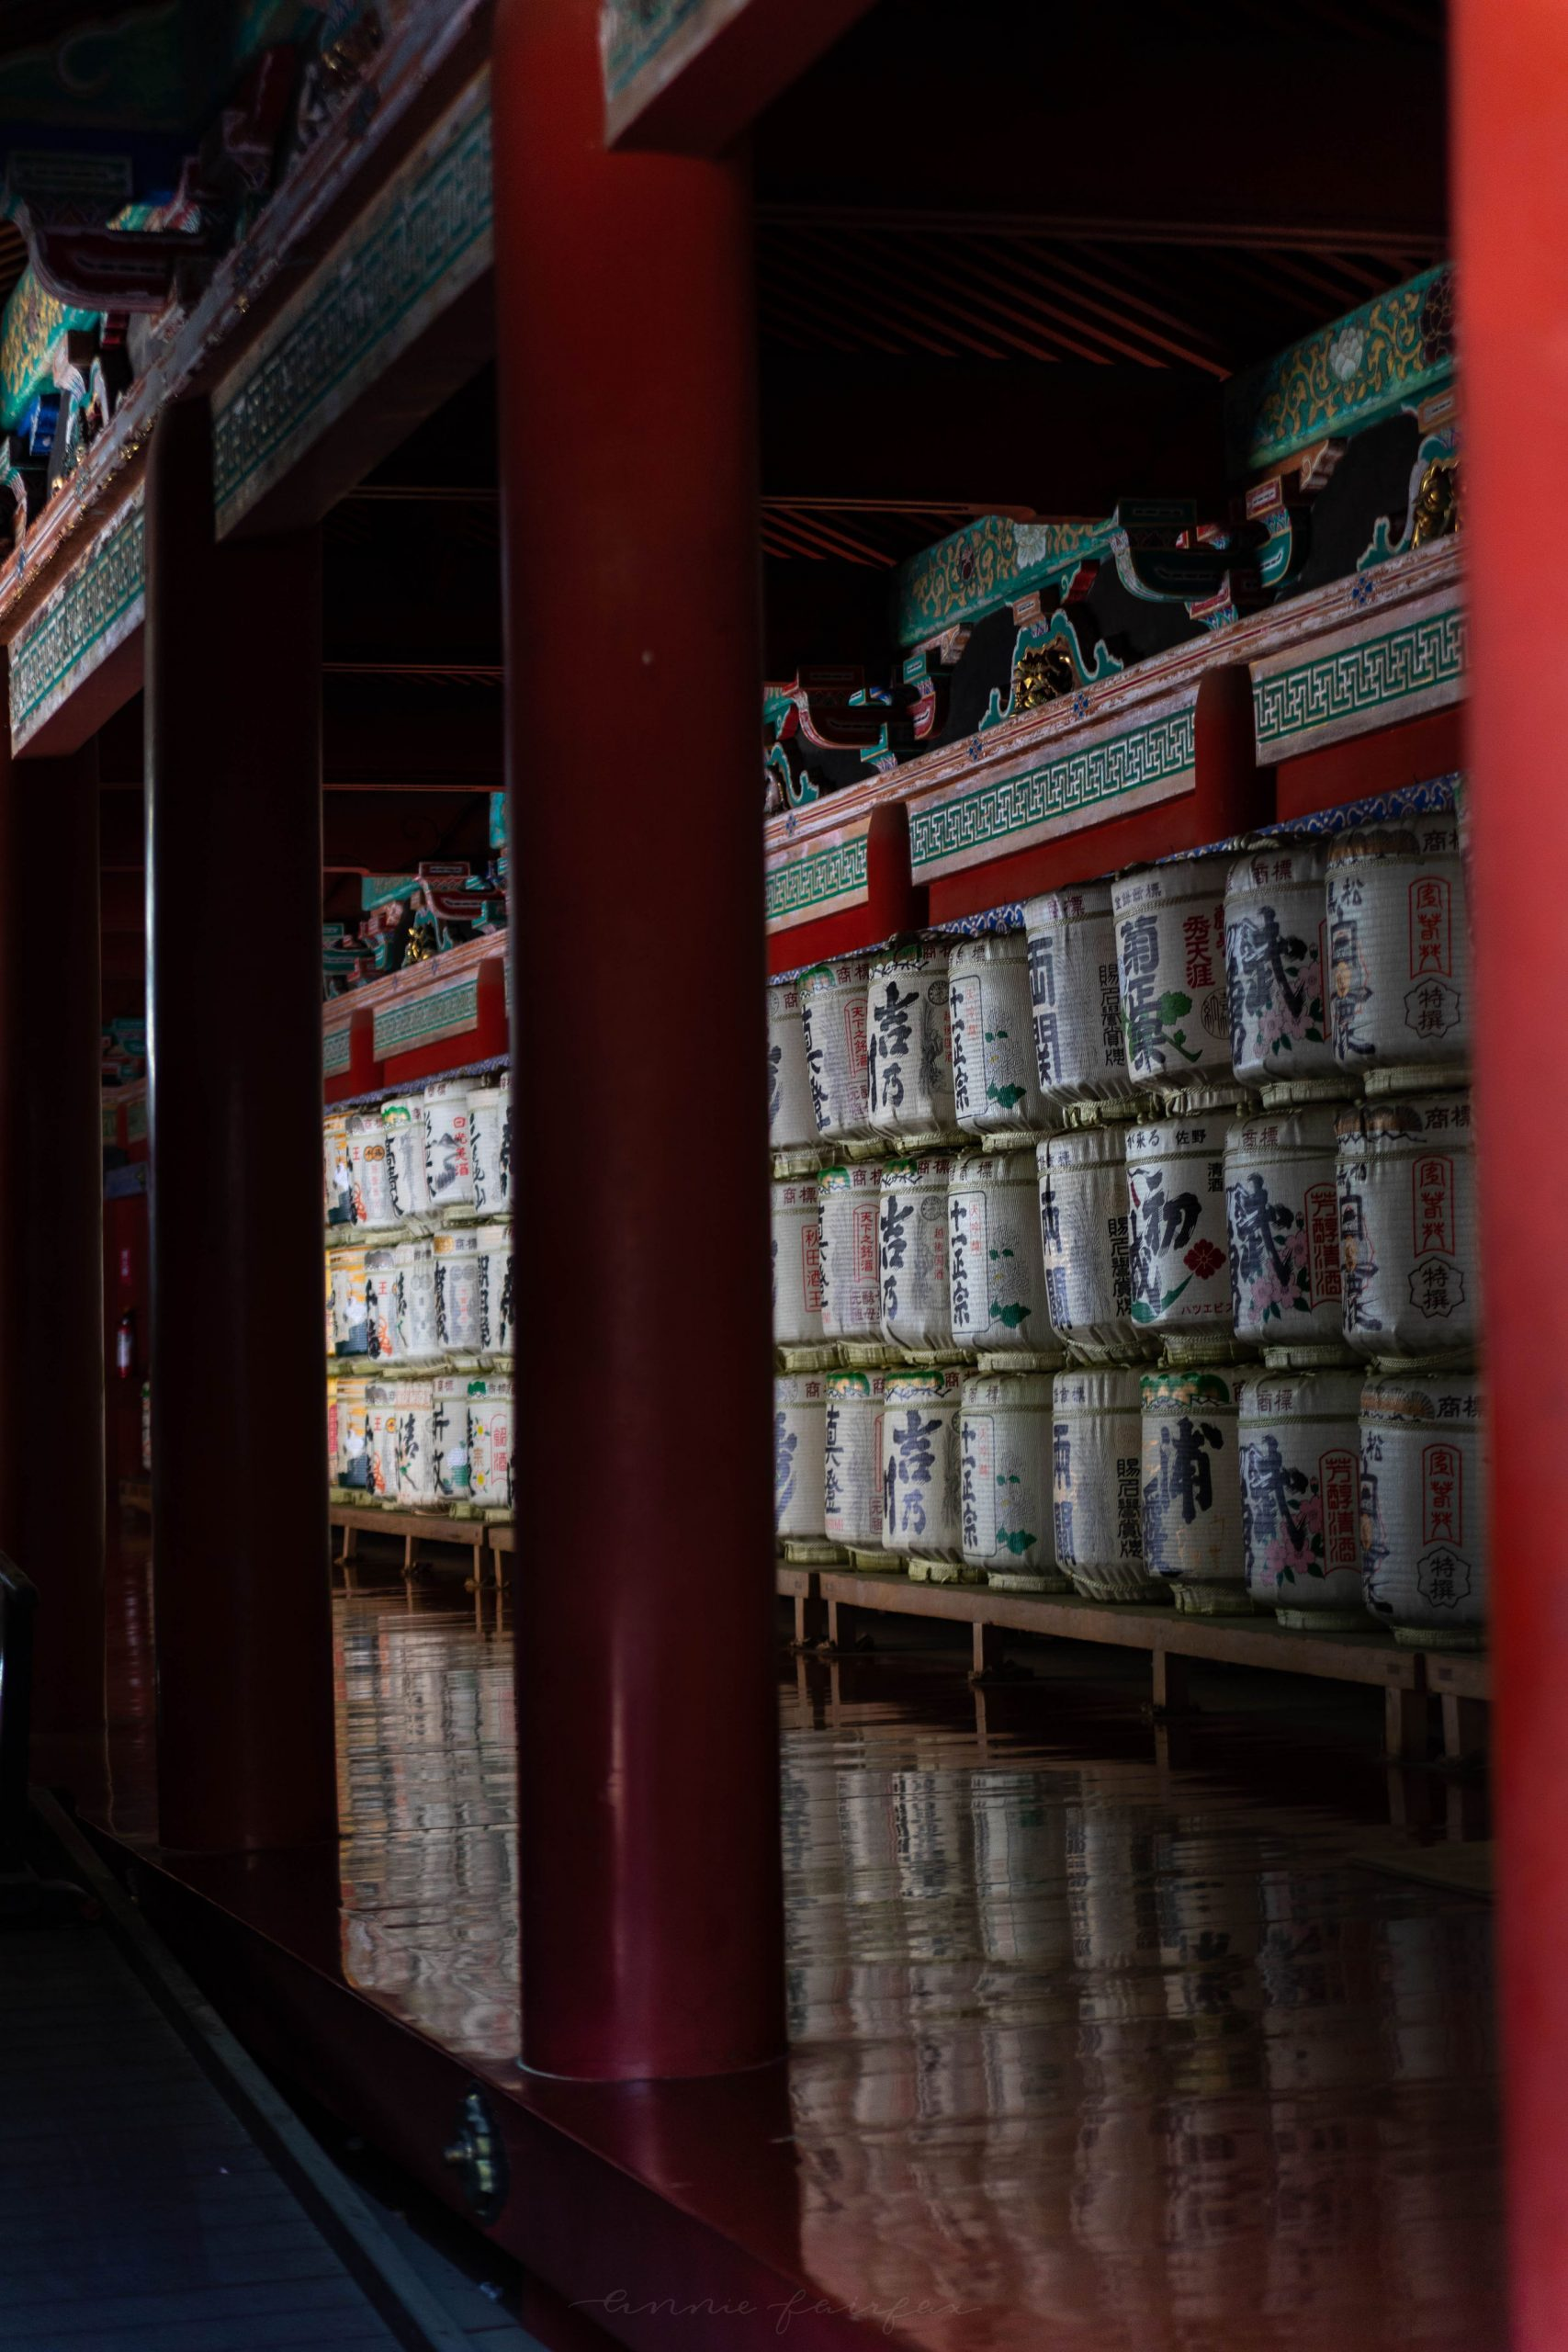 Sake Barrel Offerings at Shinto Shrine in Nikko, Japan Photographed by Annie Fairfax